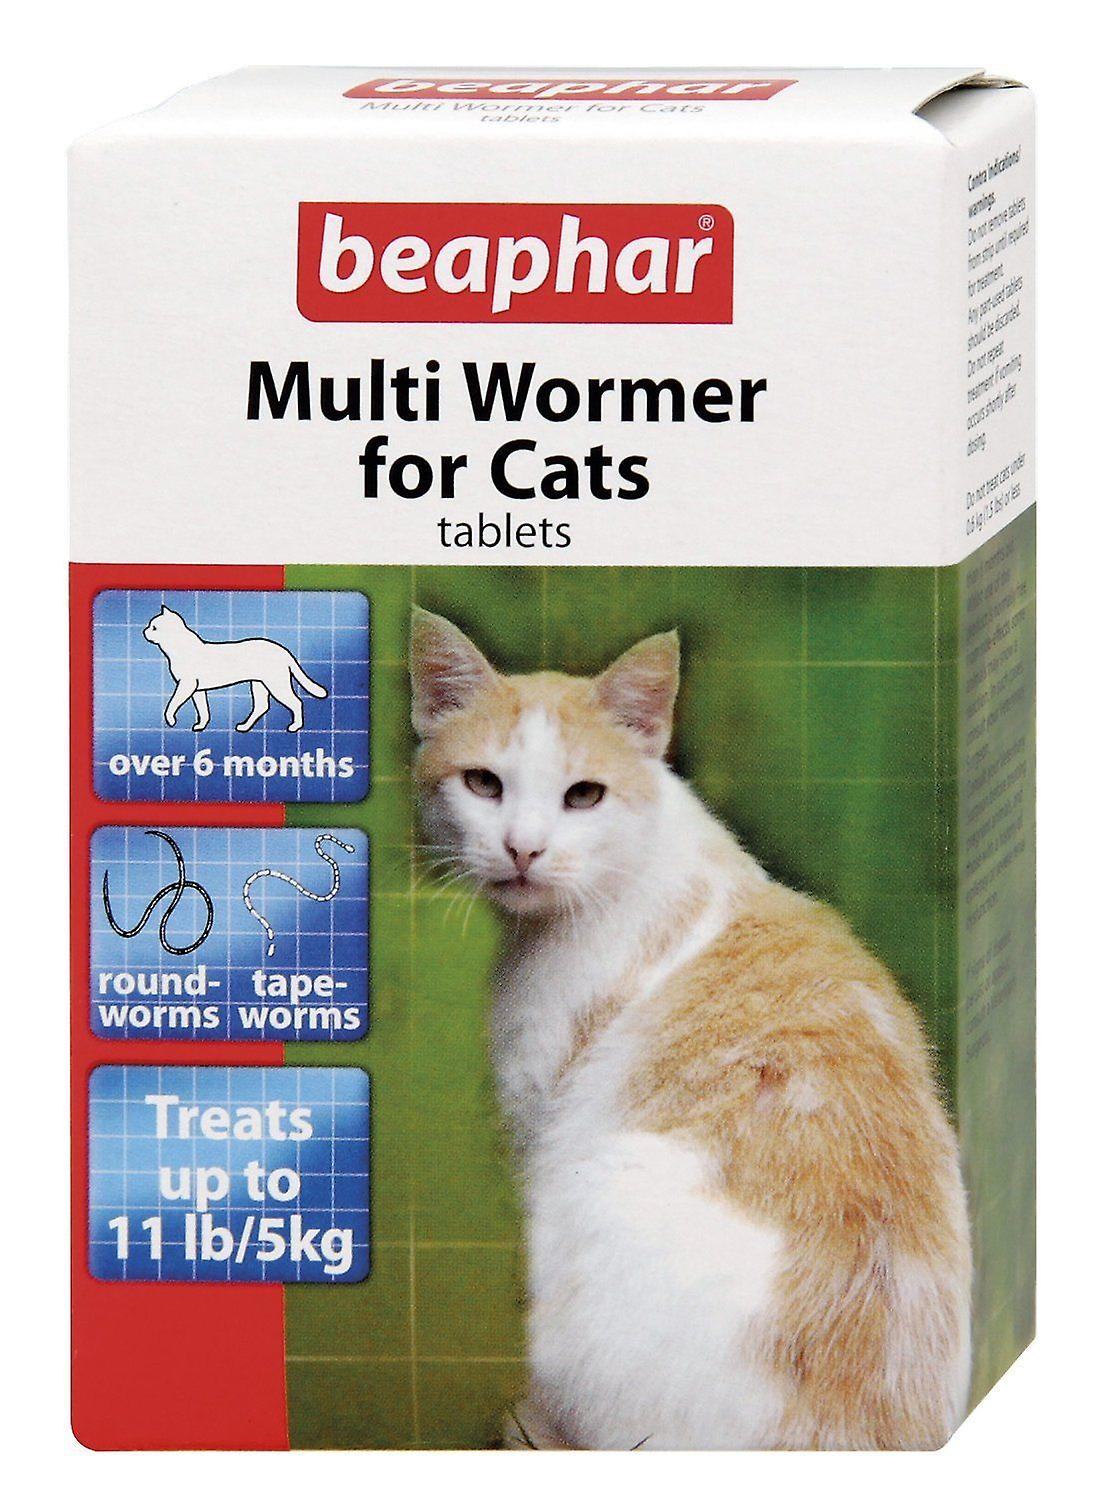 BEAPHAR MULTI WORMER FOR CATS 12 TABLETS WORMER TREATMENT